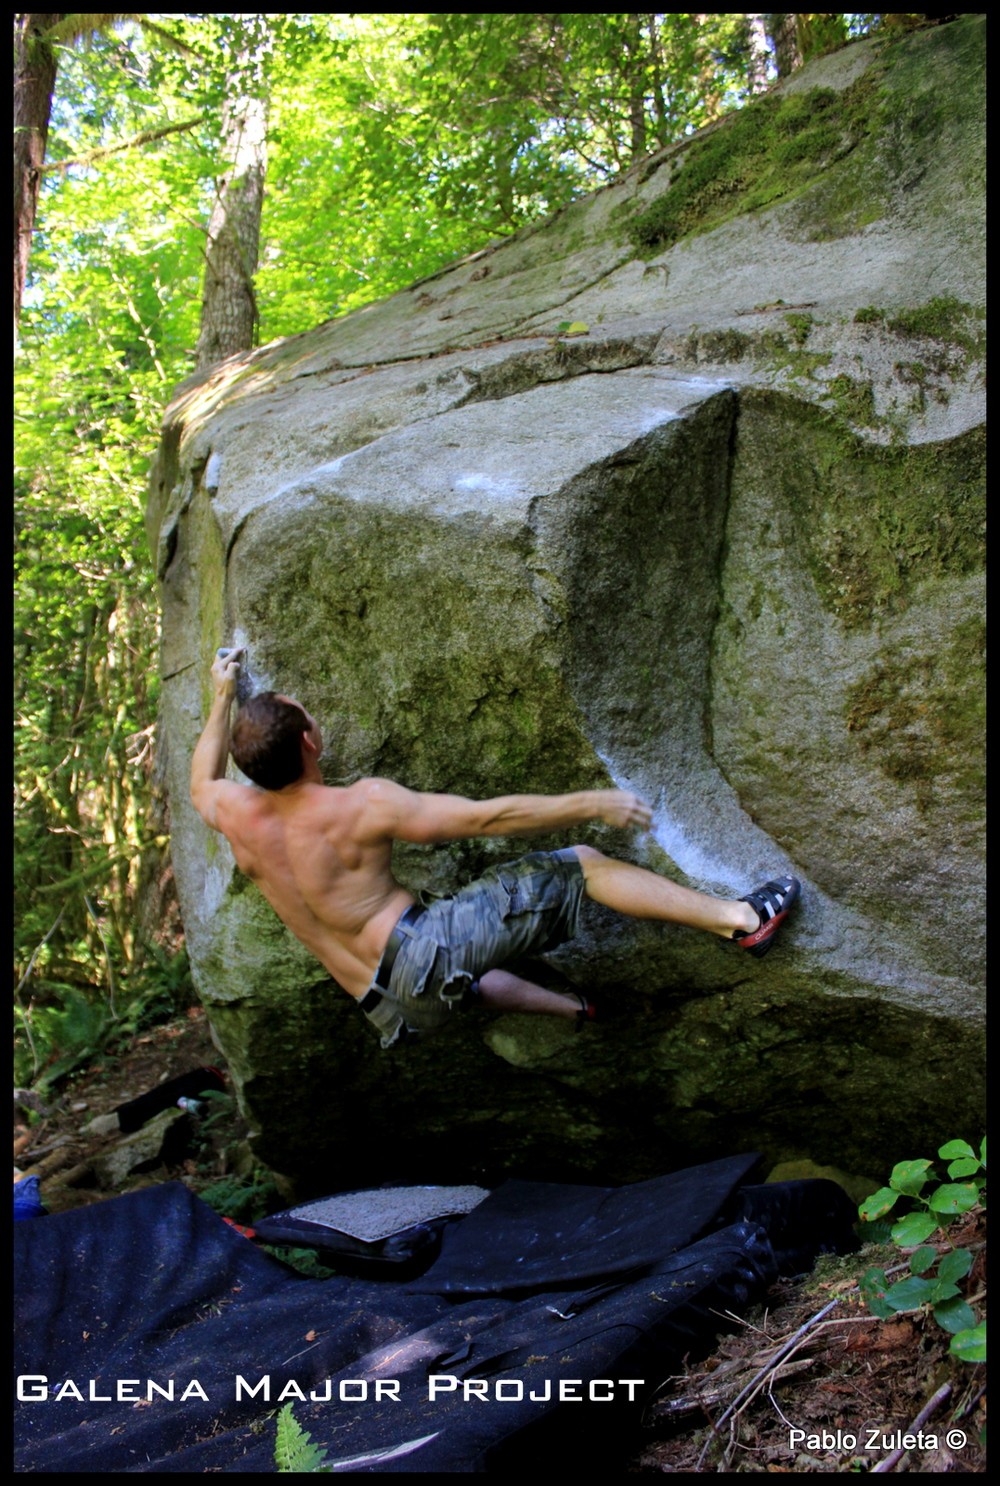 Jesse Evans working a hard project in the Galena Major Bouldering Area.